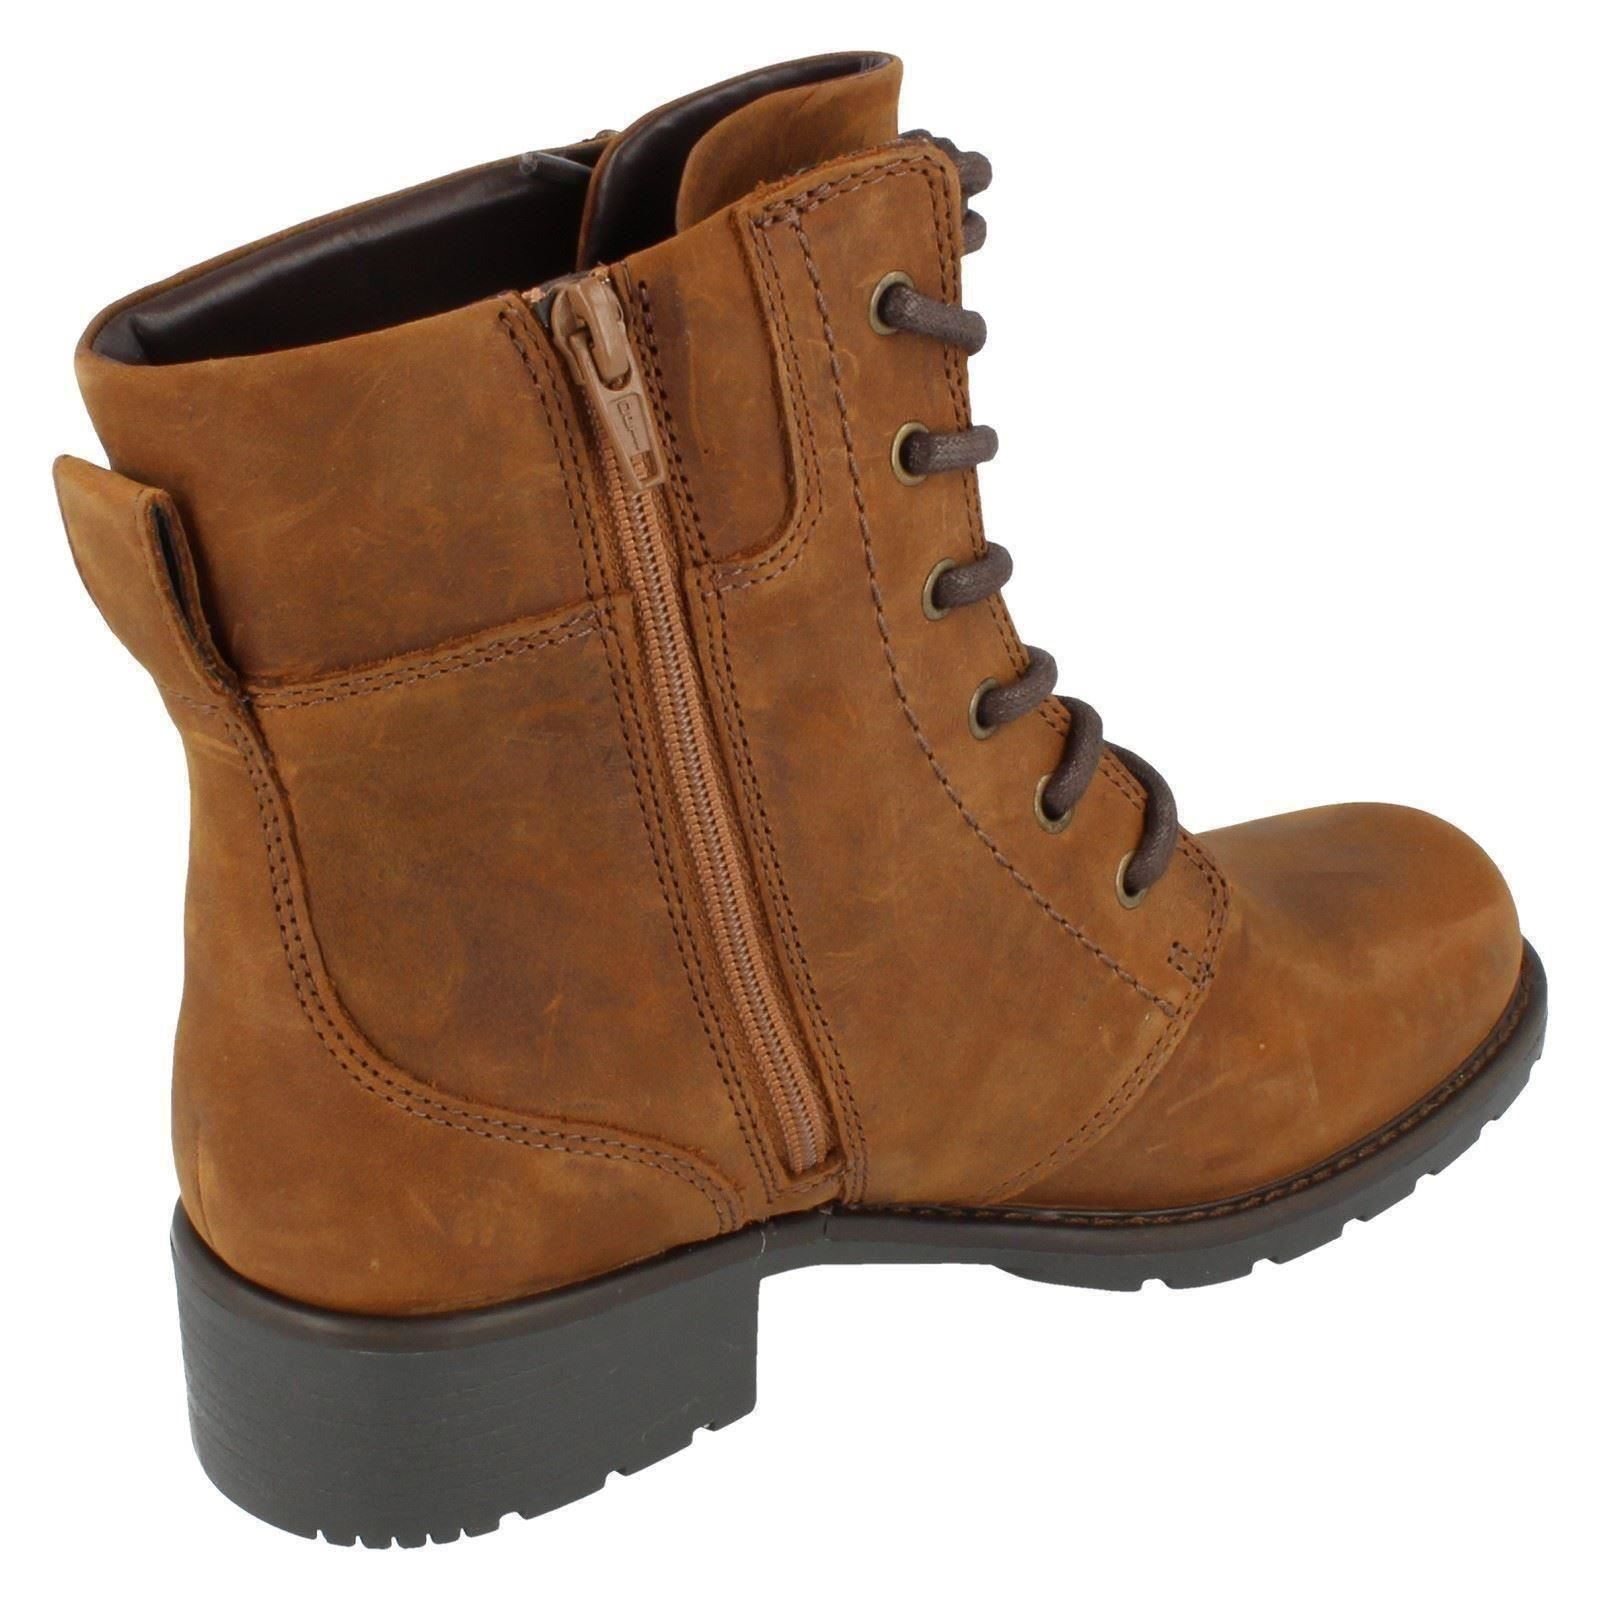 Ladies-Clarks-Casual-Lace-Up-Inside-Zip-Nubuck-Leather-Ankle-Boots-Orinoco-Spice thumbnail 24